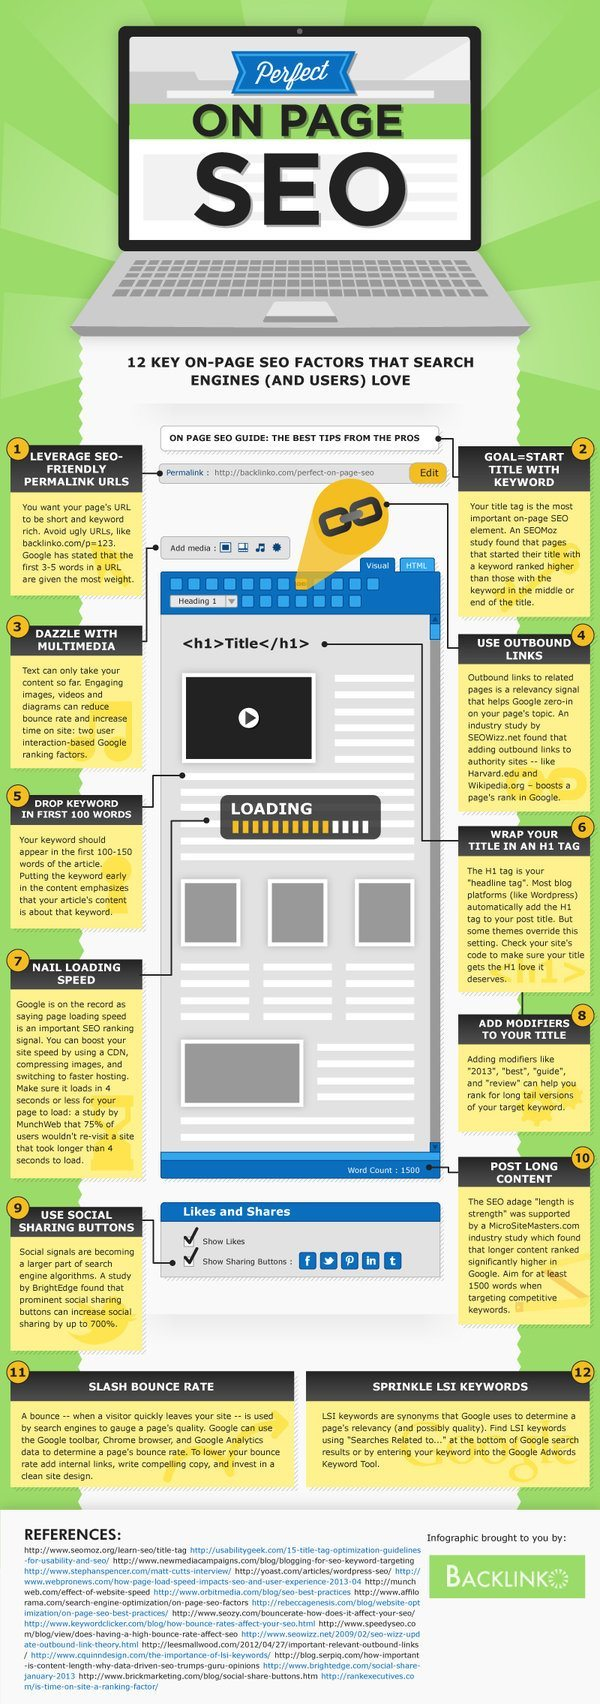 On page SEO infographic - long-form content